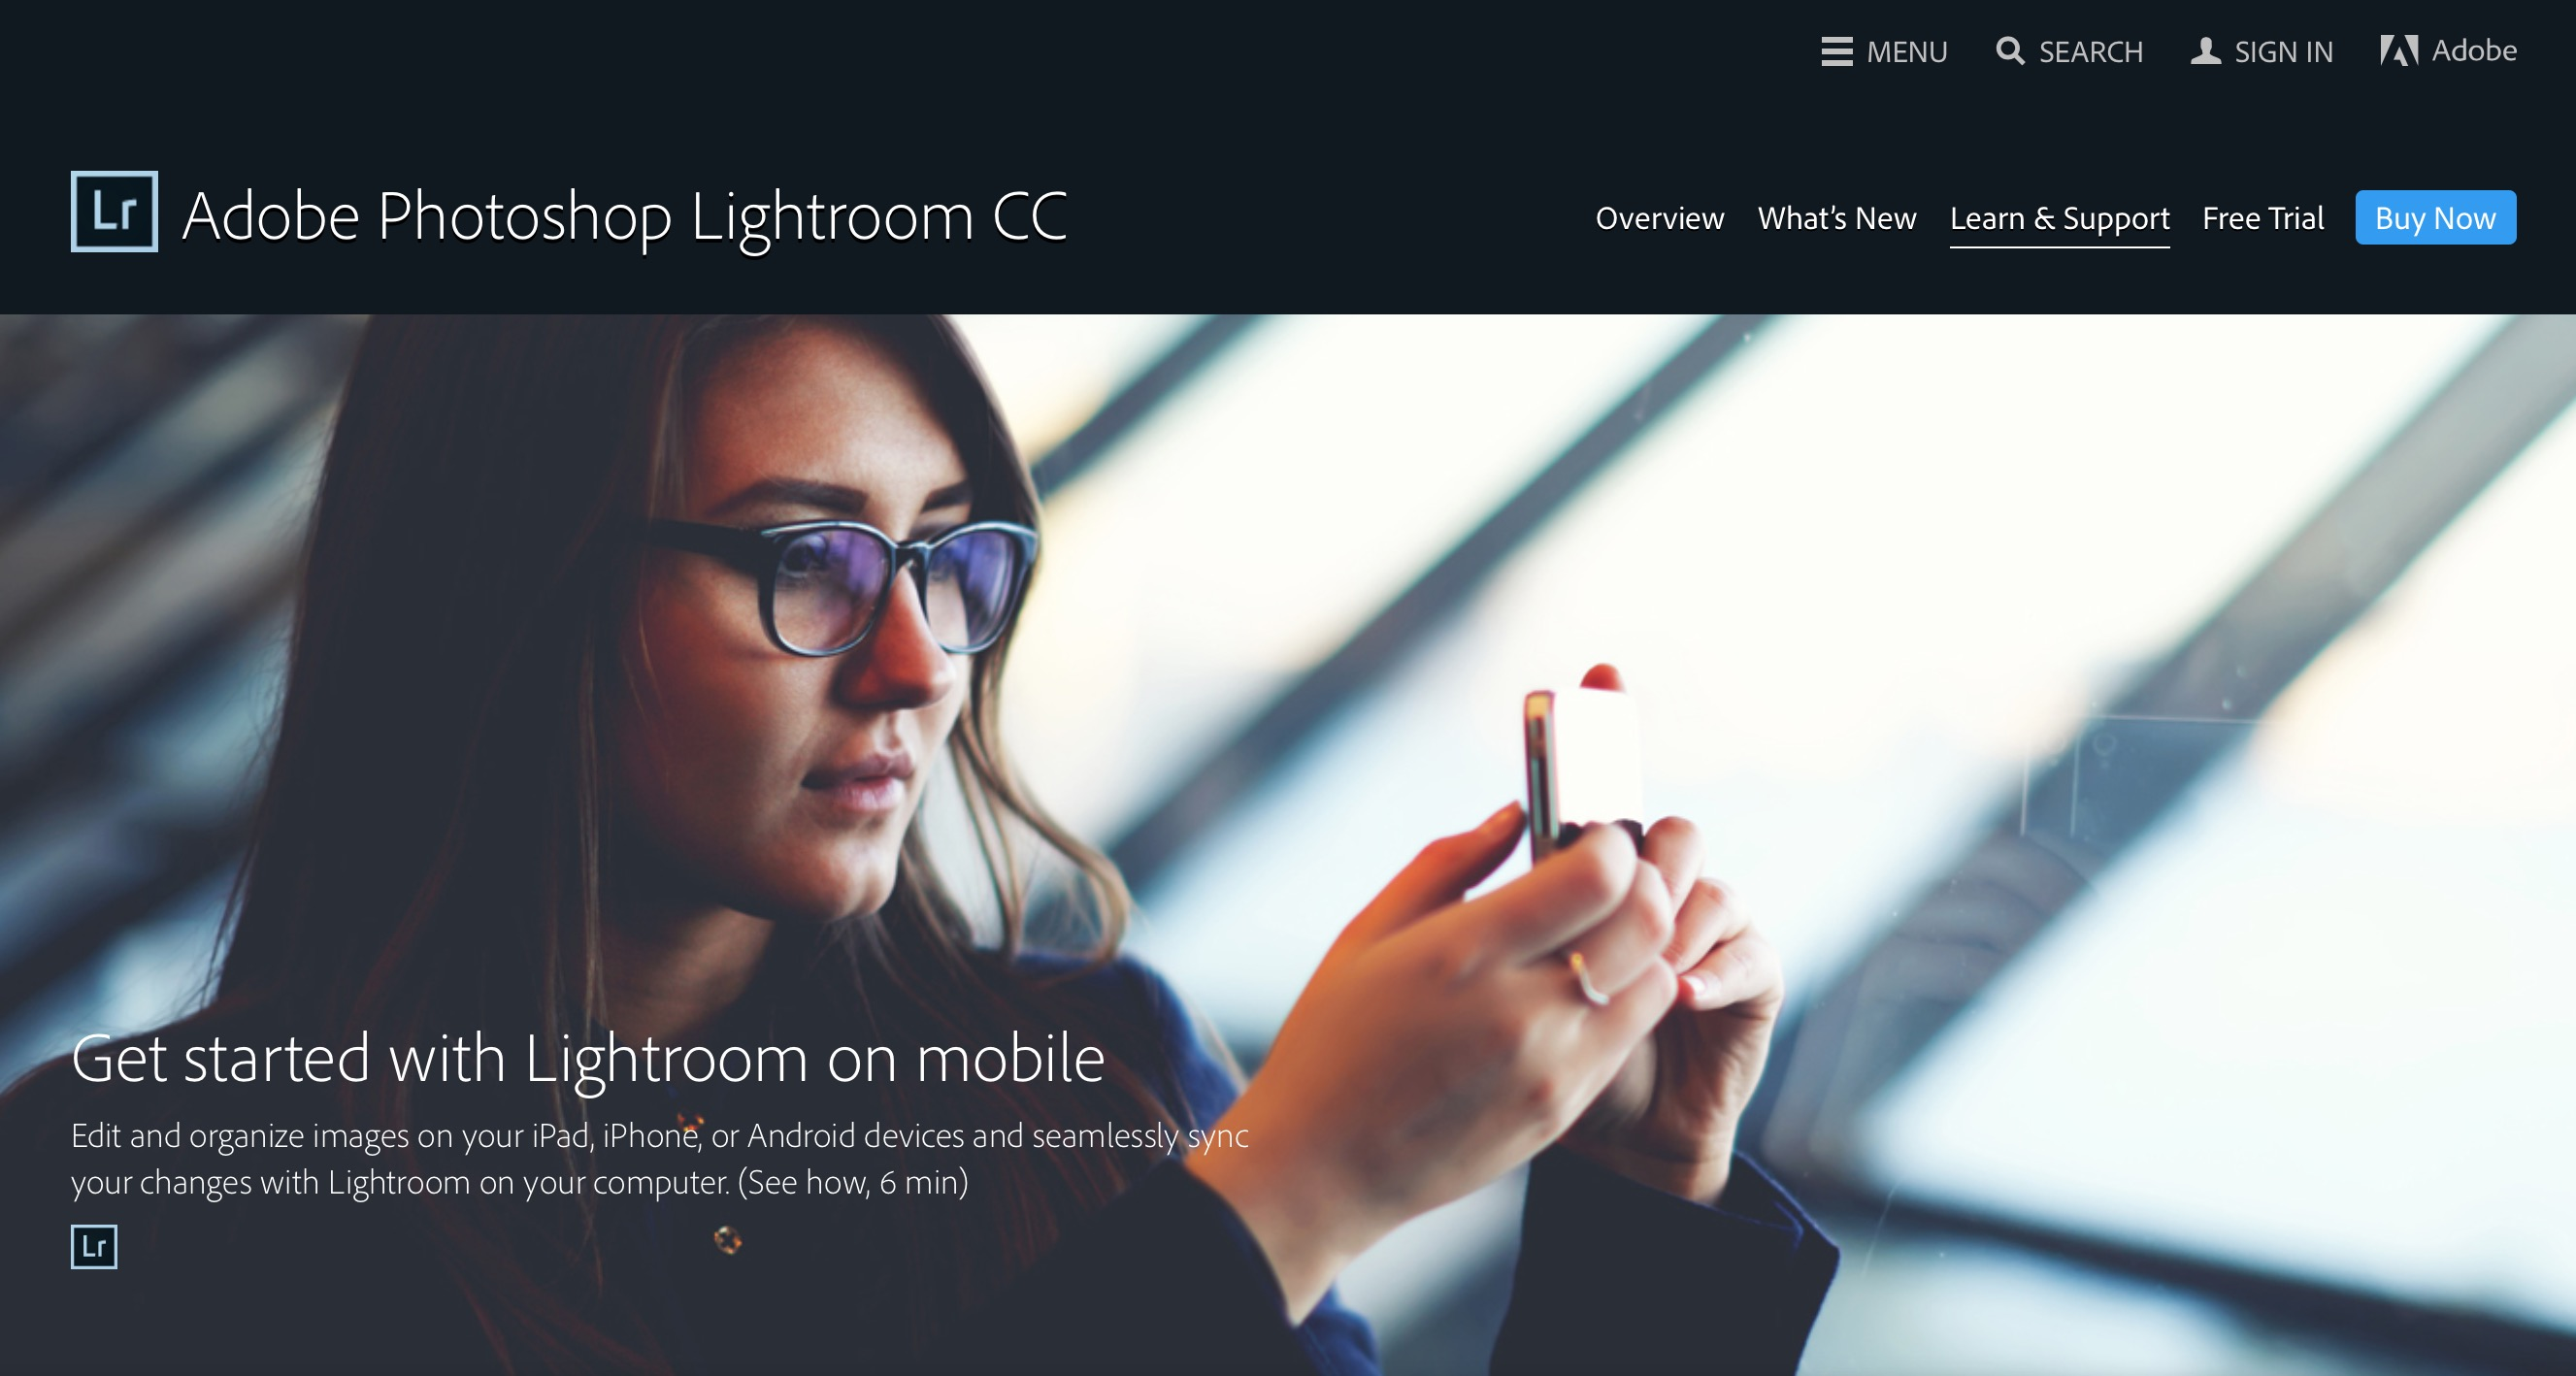 Adobe Lightroom Mobile for editing your photos is now offered as a FREE app from Adobe. Click on the image to find out more.